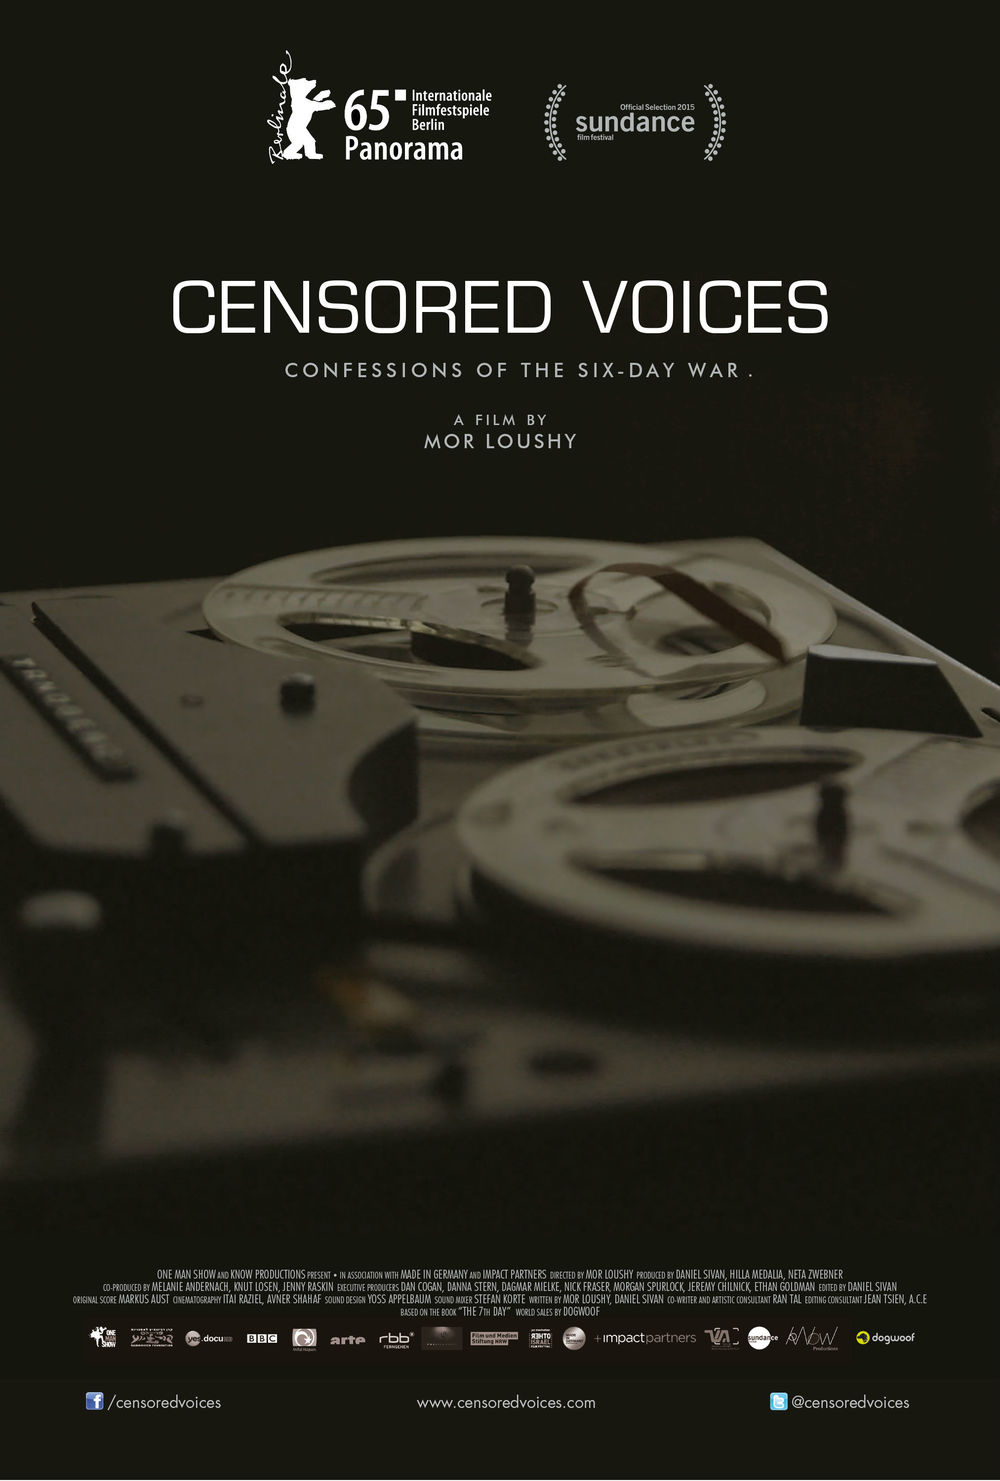 Censored-Voices-1sheet-web 3.jpg